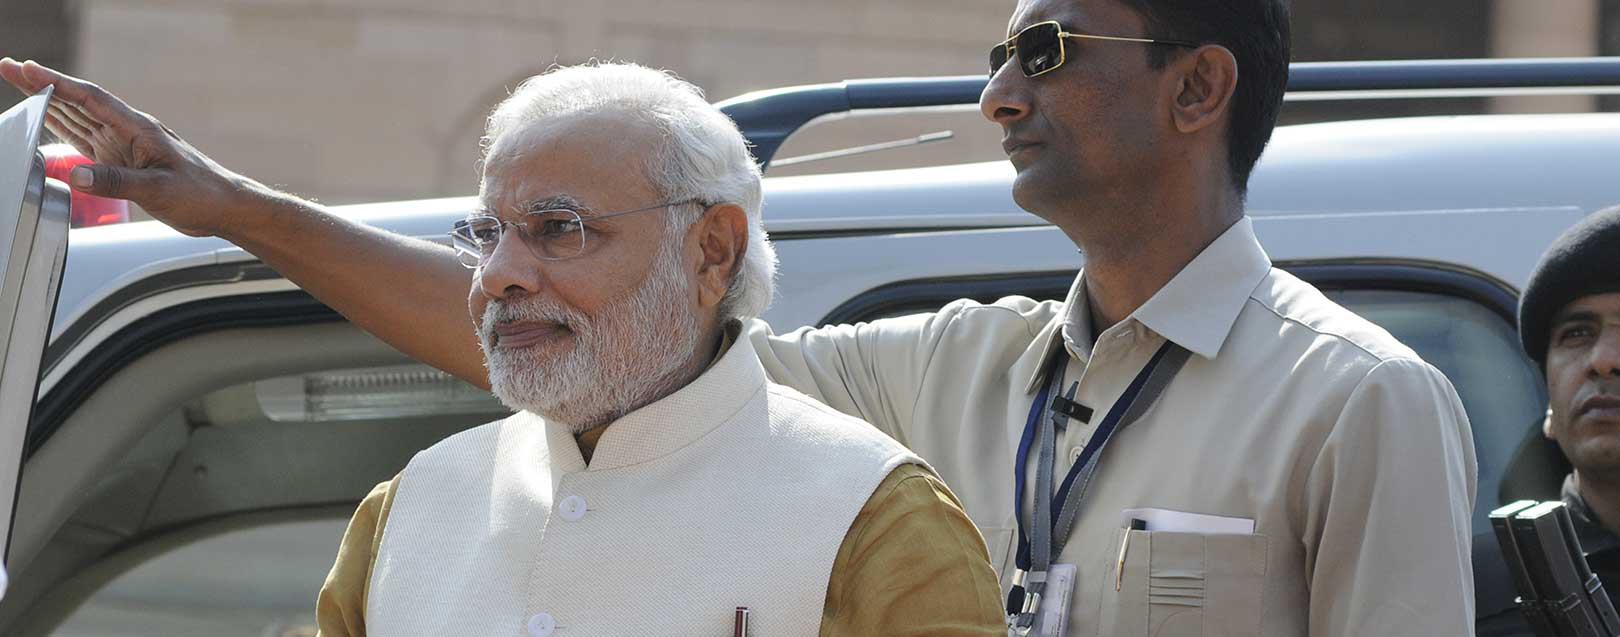 PM asks NITI to prepare vision document for future growth